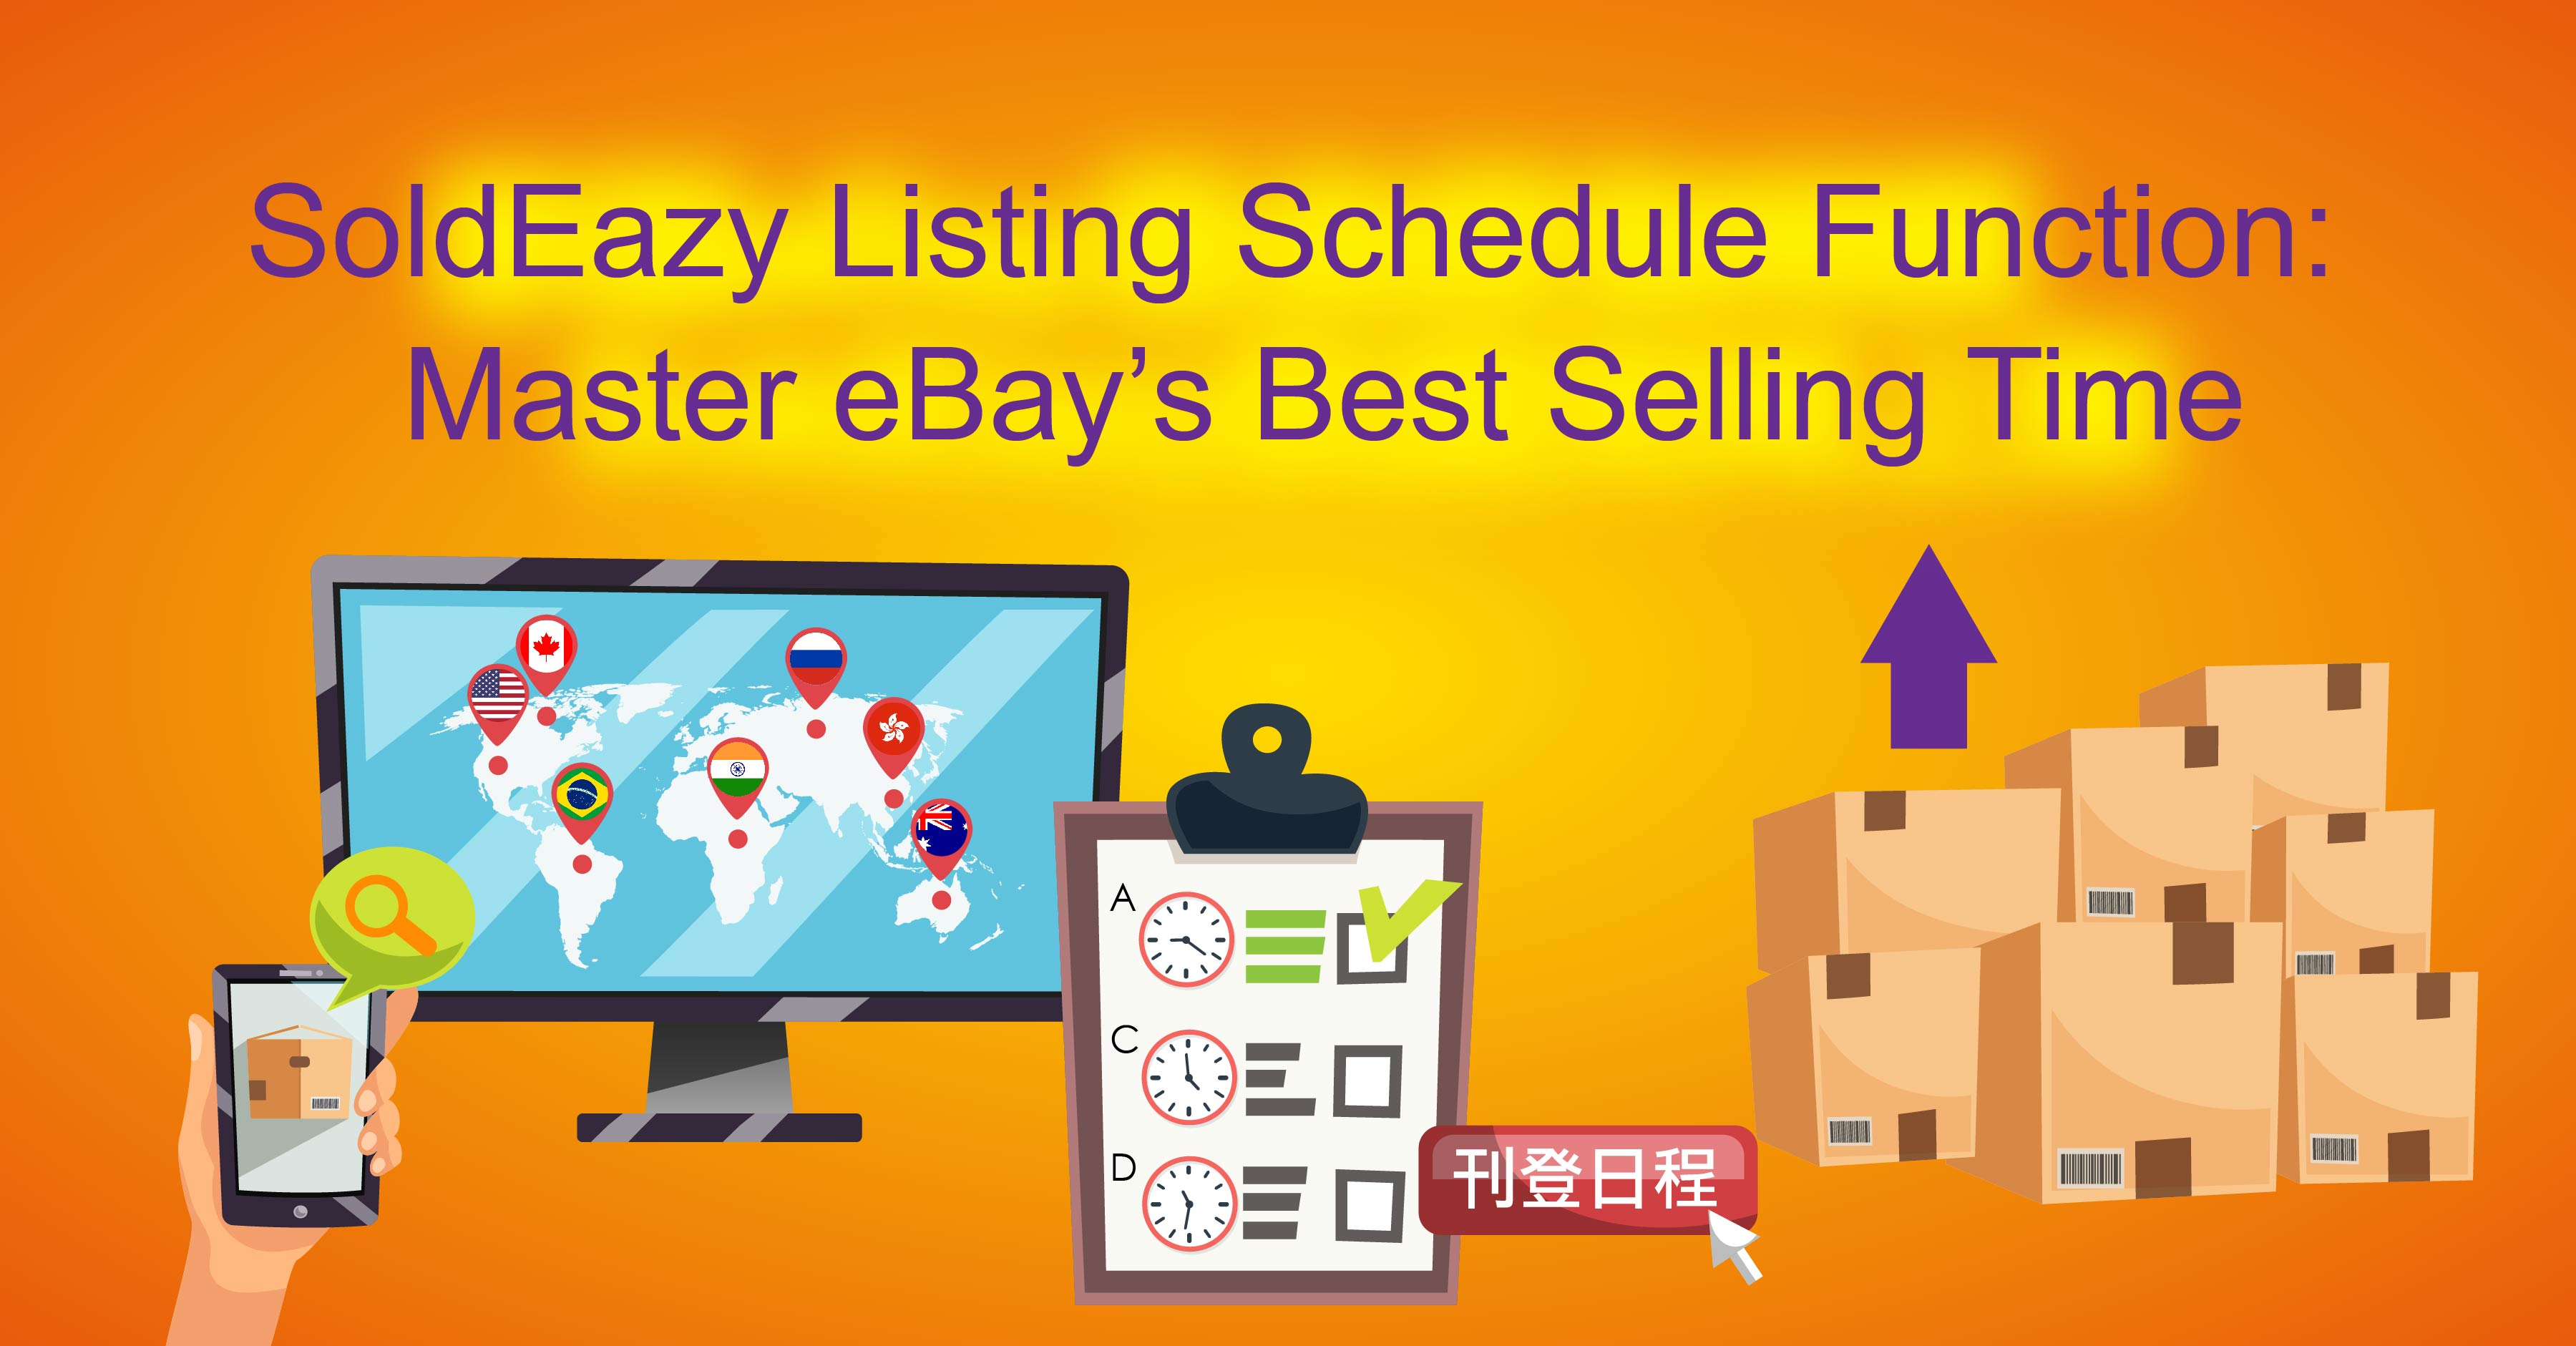 Ebay Promotion Tips Soldeazy Listing Schedule Function Master Ebay S Best Selling Time Soldeazy